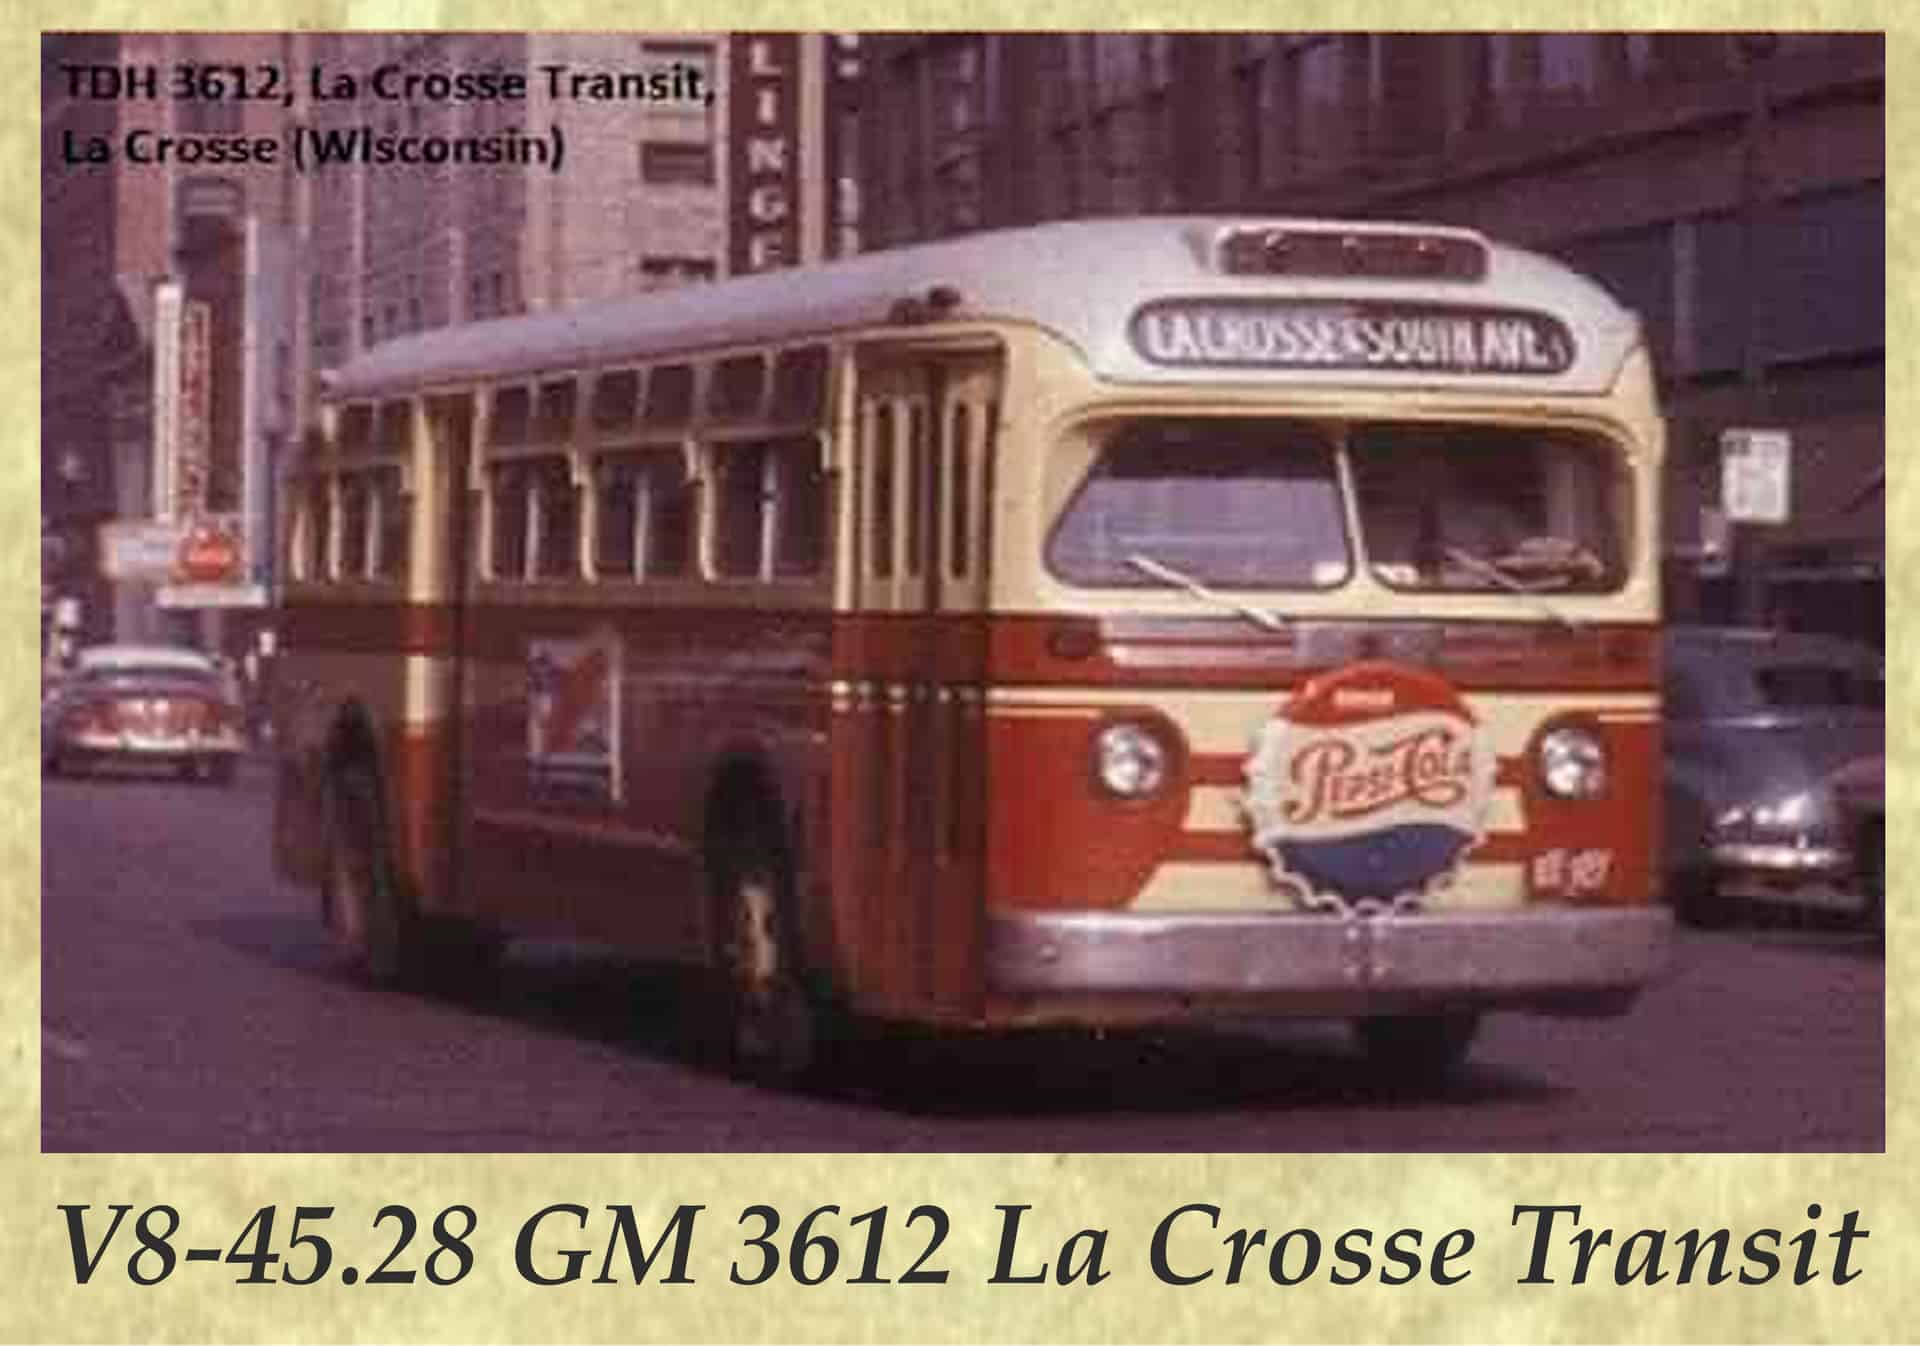 V8-45.28 GM 3612 La Crosse Transit